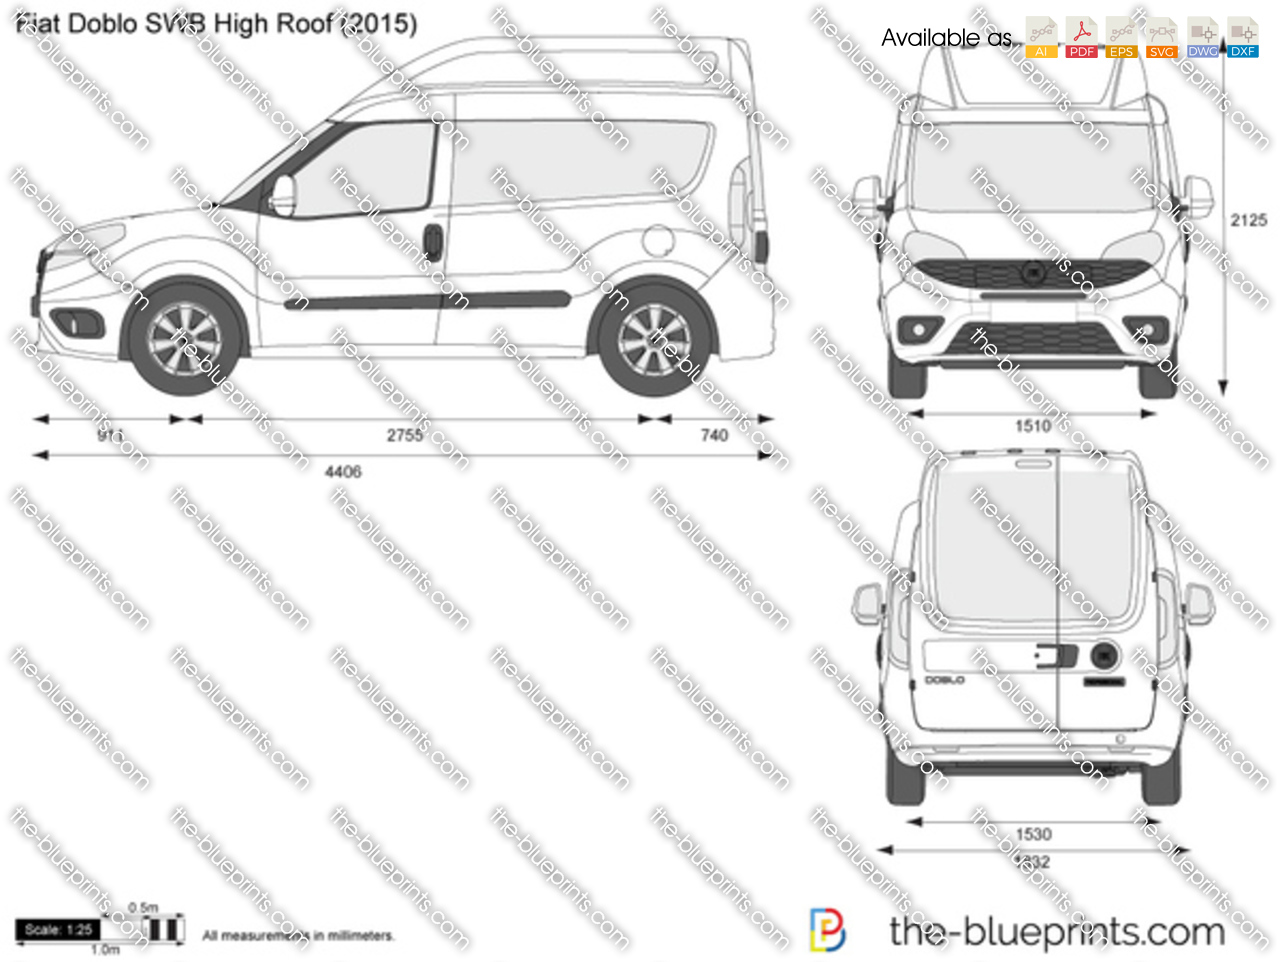 Fiat Doblo SWB High Roof